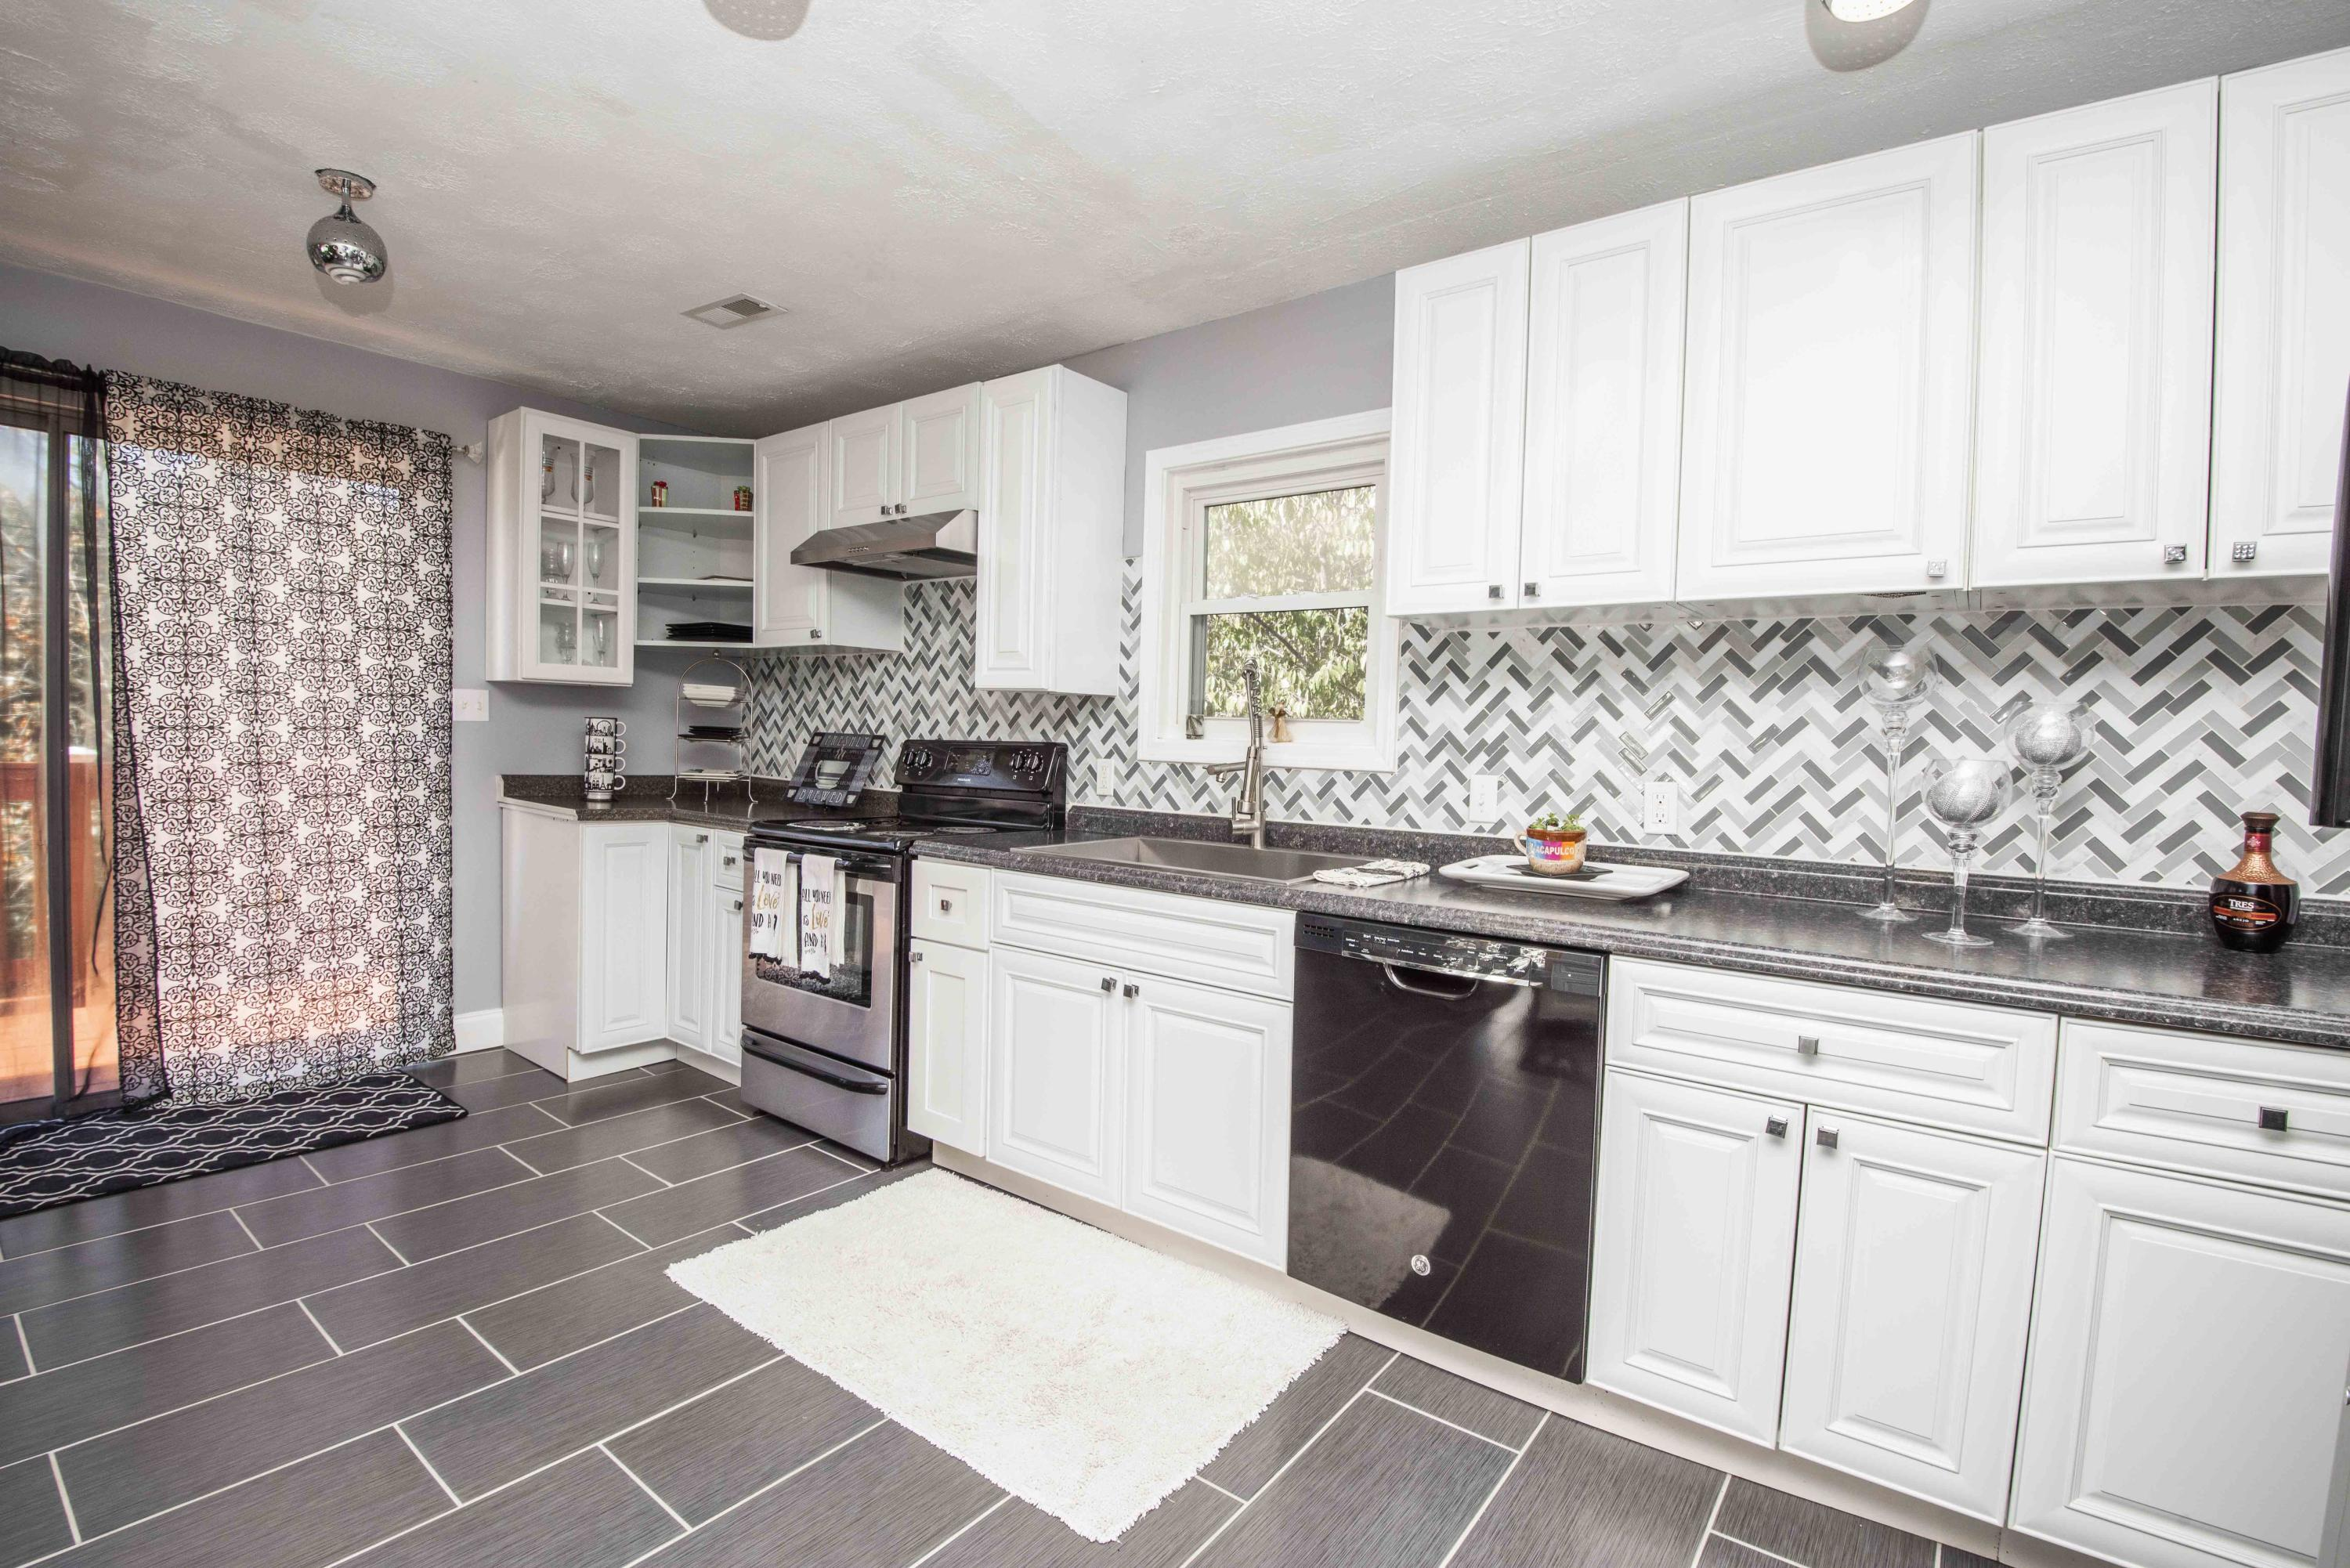 5659 Matlock Drive, Knoxville, Tennessee 37921, 6 Bedrooms Bedrooms, ,3 BathroomsBathrooms,Single Family,For Sale,Matlock,1121911